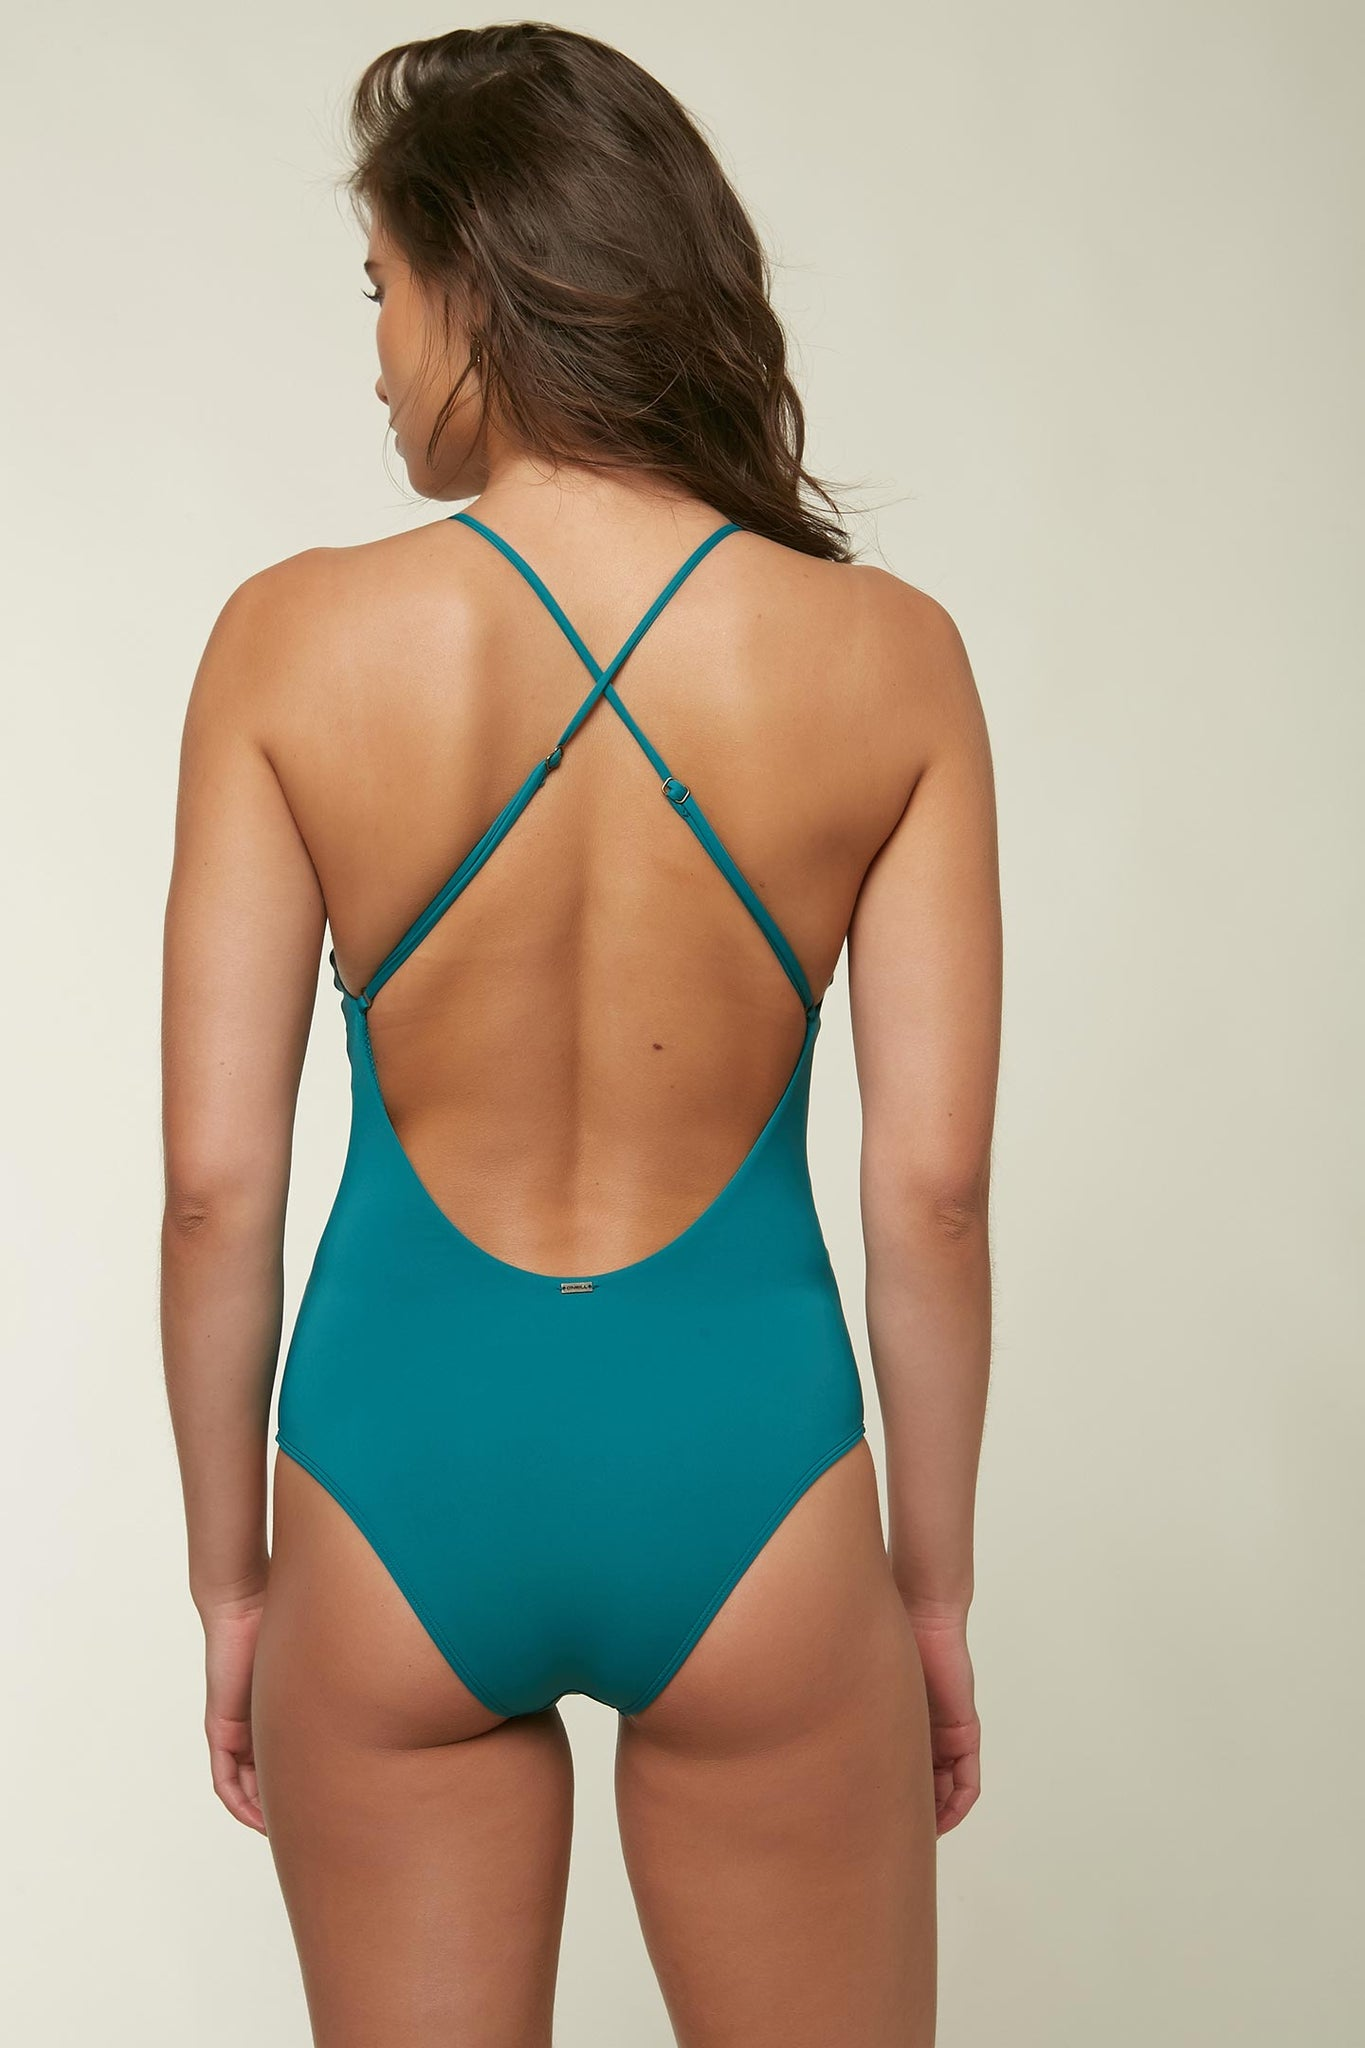 Saltwater Solids Cheeky One Piece - Teal Green | O'Neill